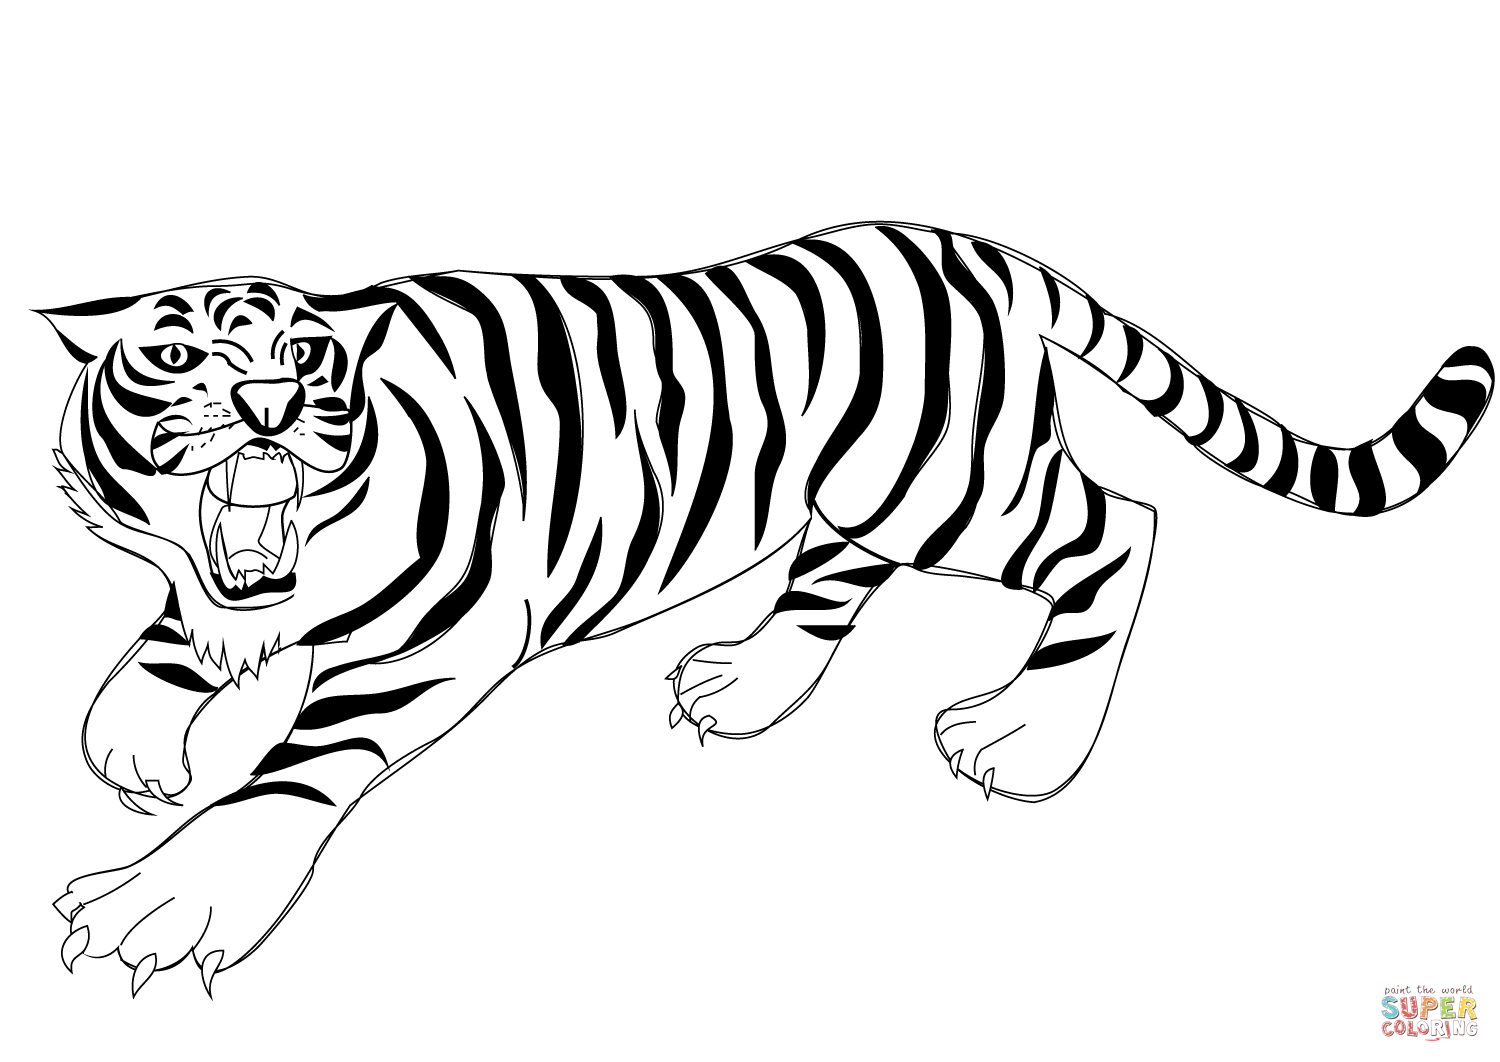 tiger printable coloring pages a loud roaring of bengal tiger coloring page download tiger pages coloring printable